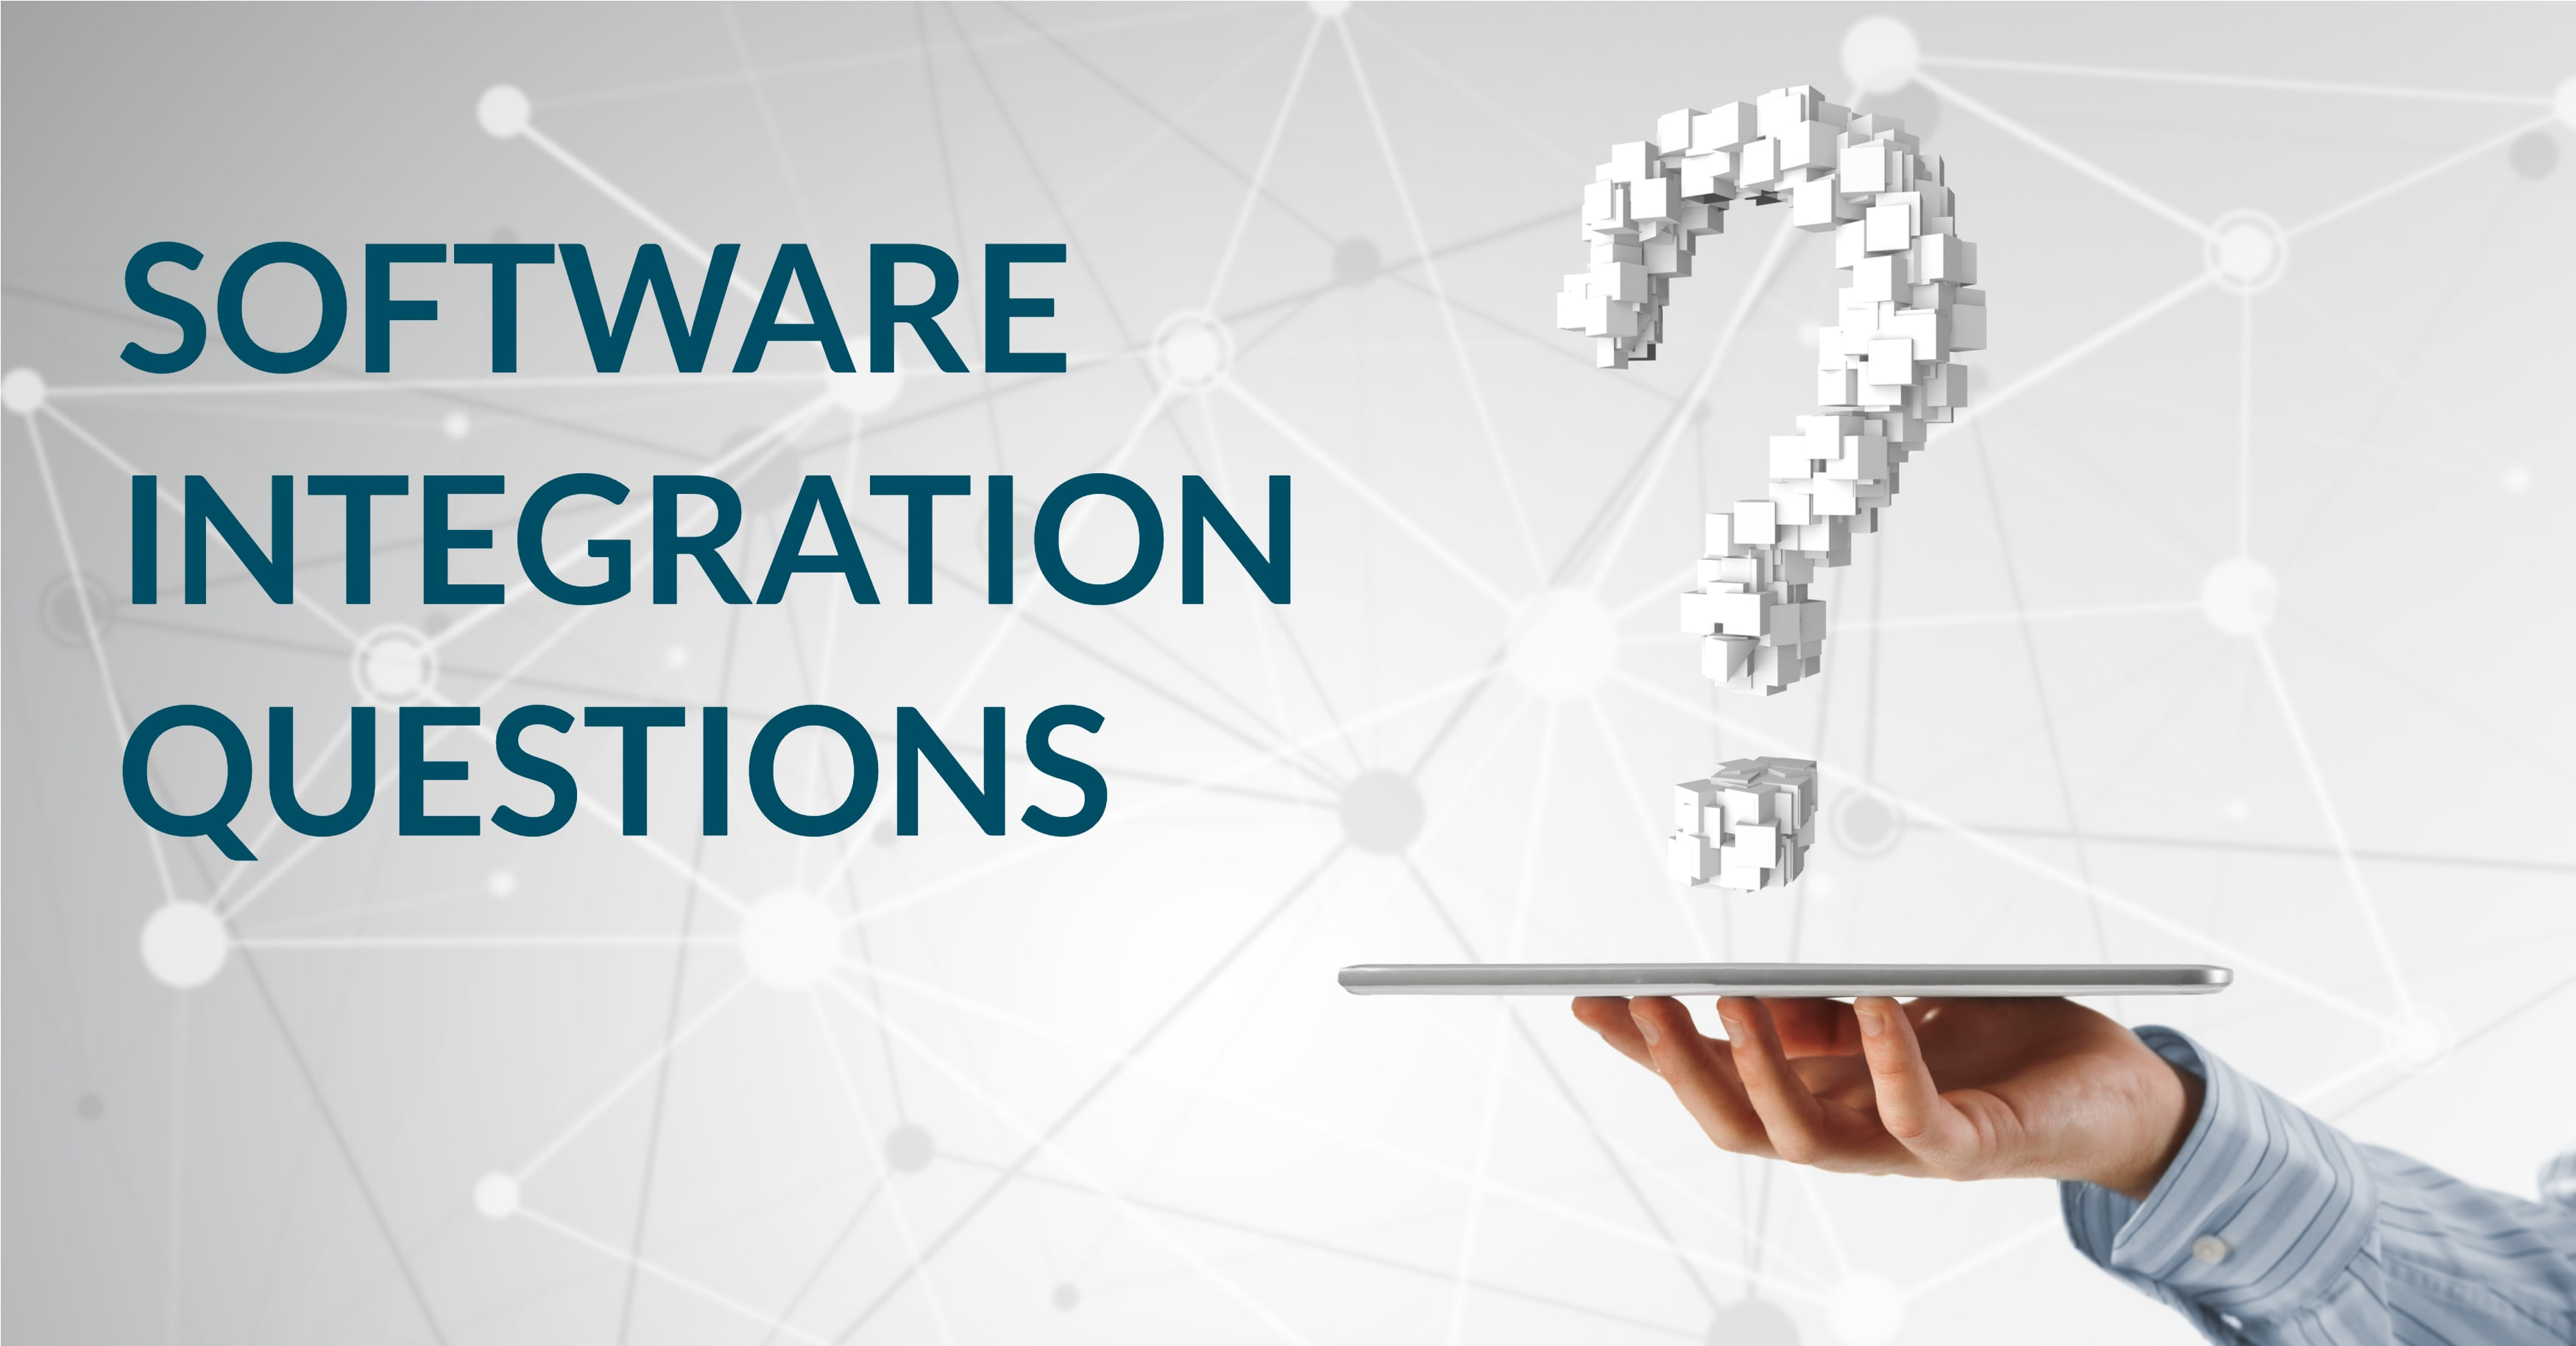 Answers to Common Software Integration Questions